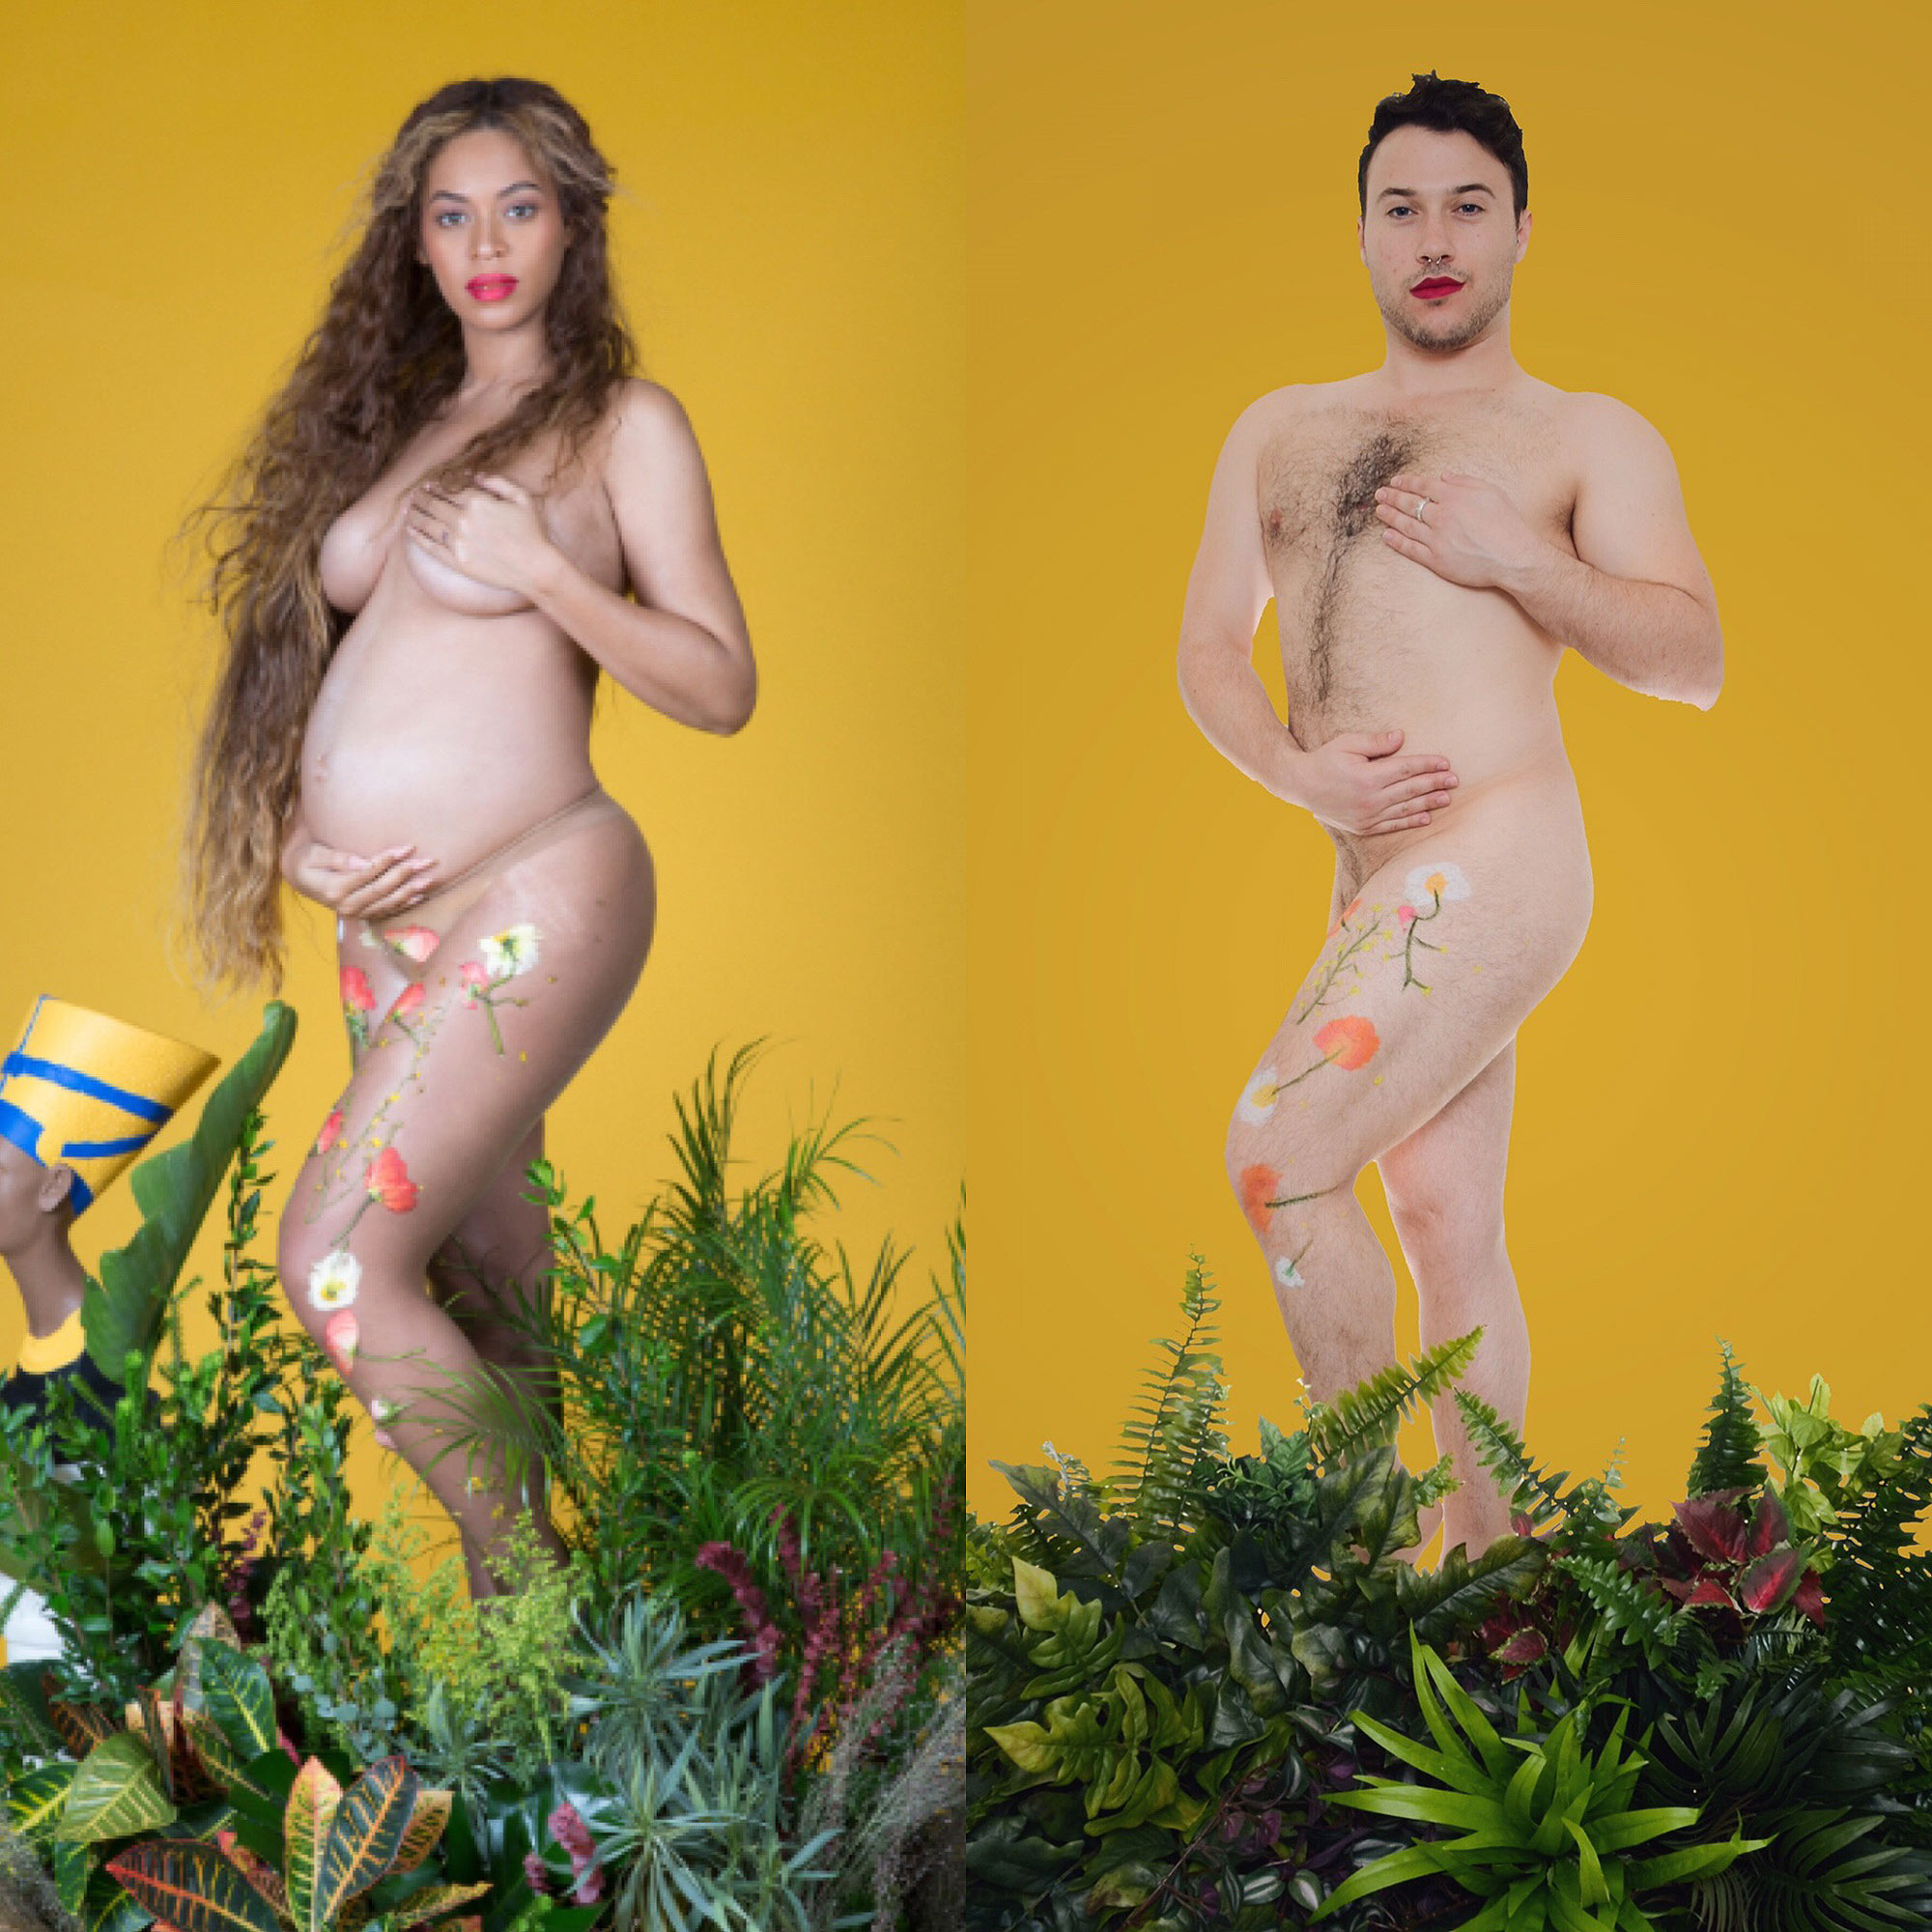 L.A.-based actor Ben Yahr recreated Beyonce's pregnancy photo shoot to send a body positive message.